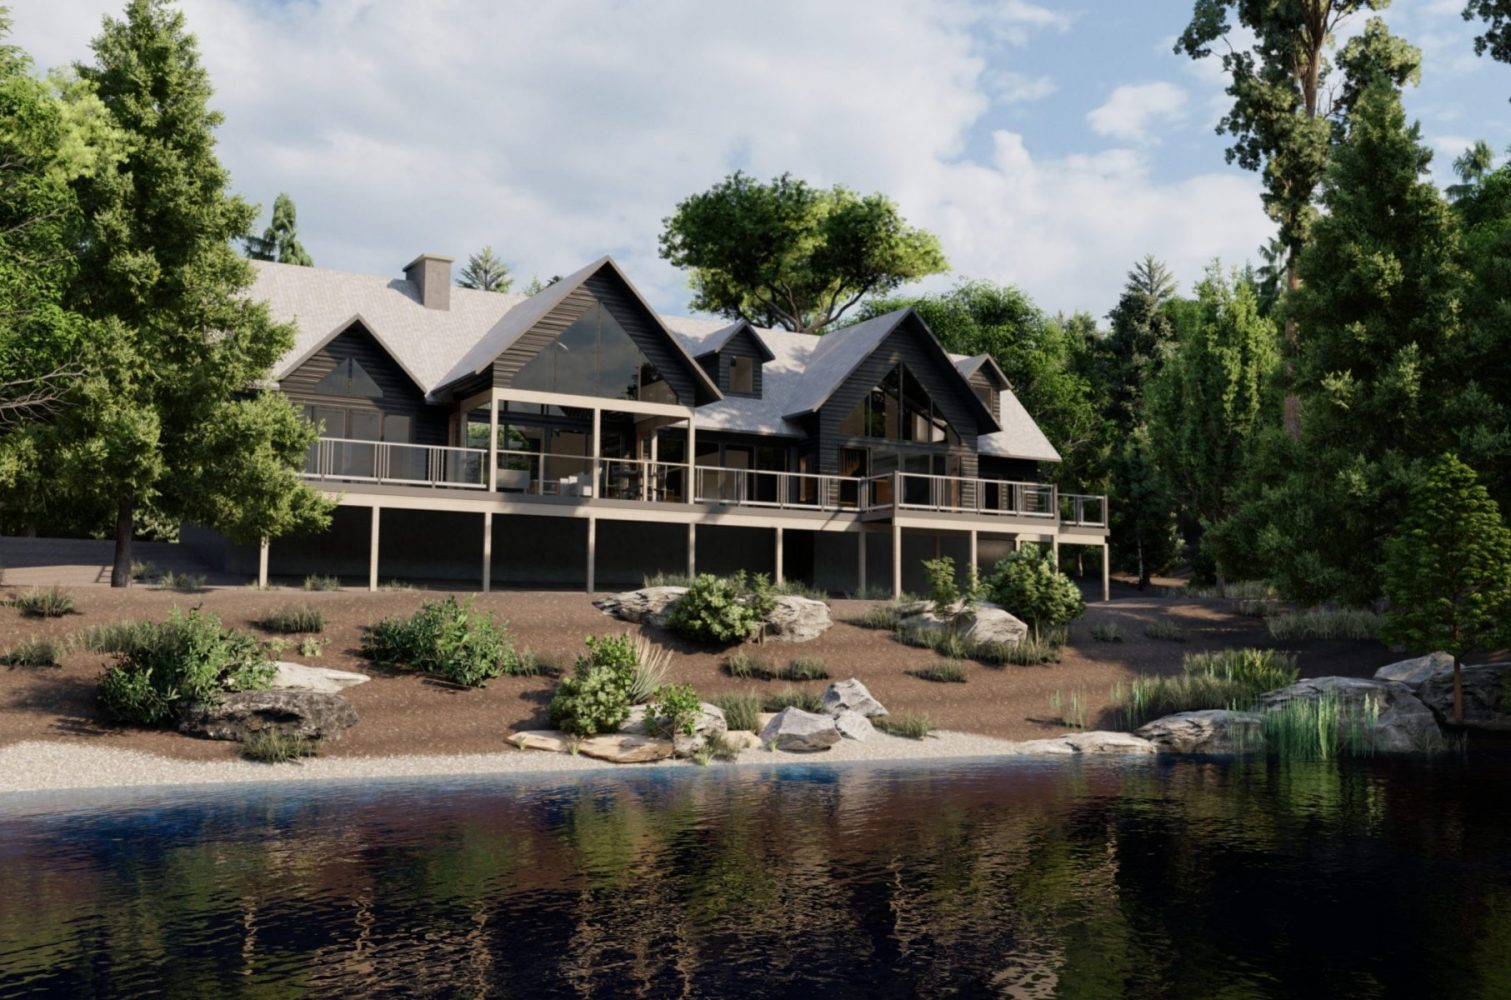 3D rendering of a transitional style Muskoka cottage by Spencer Douglas and PattyMac